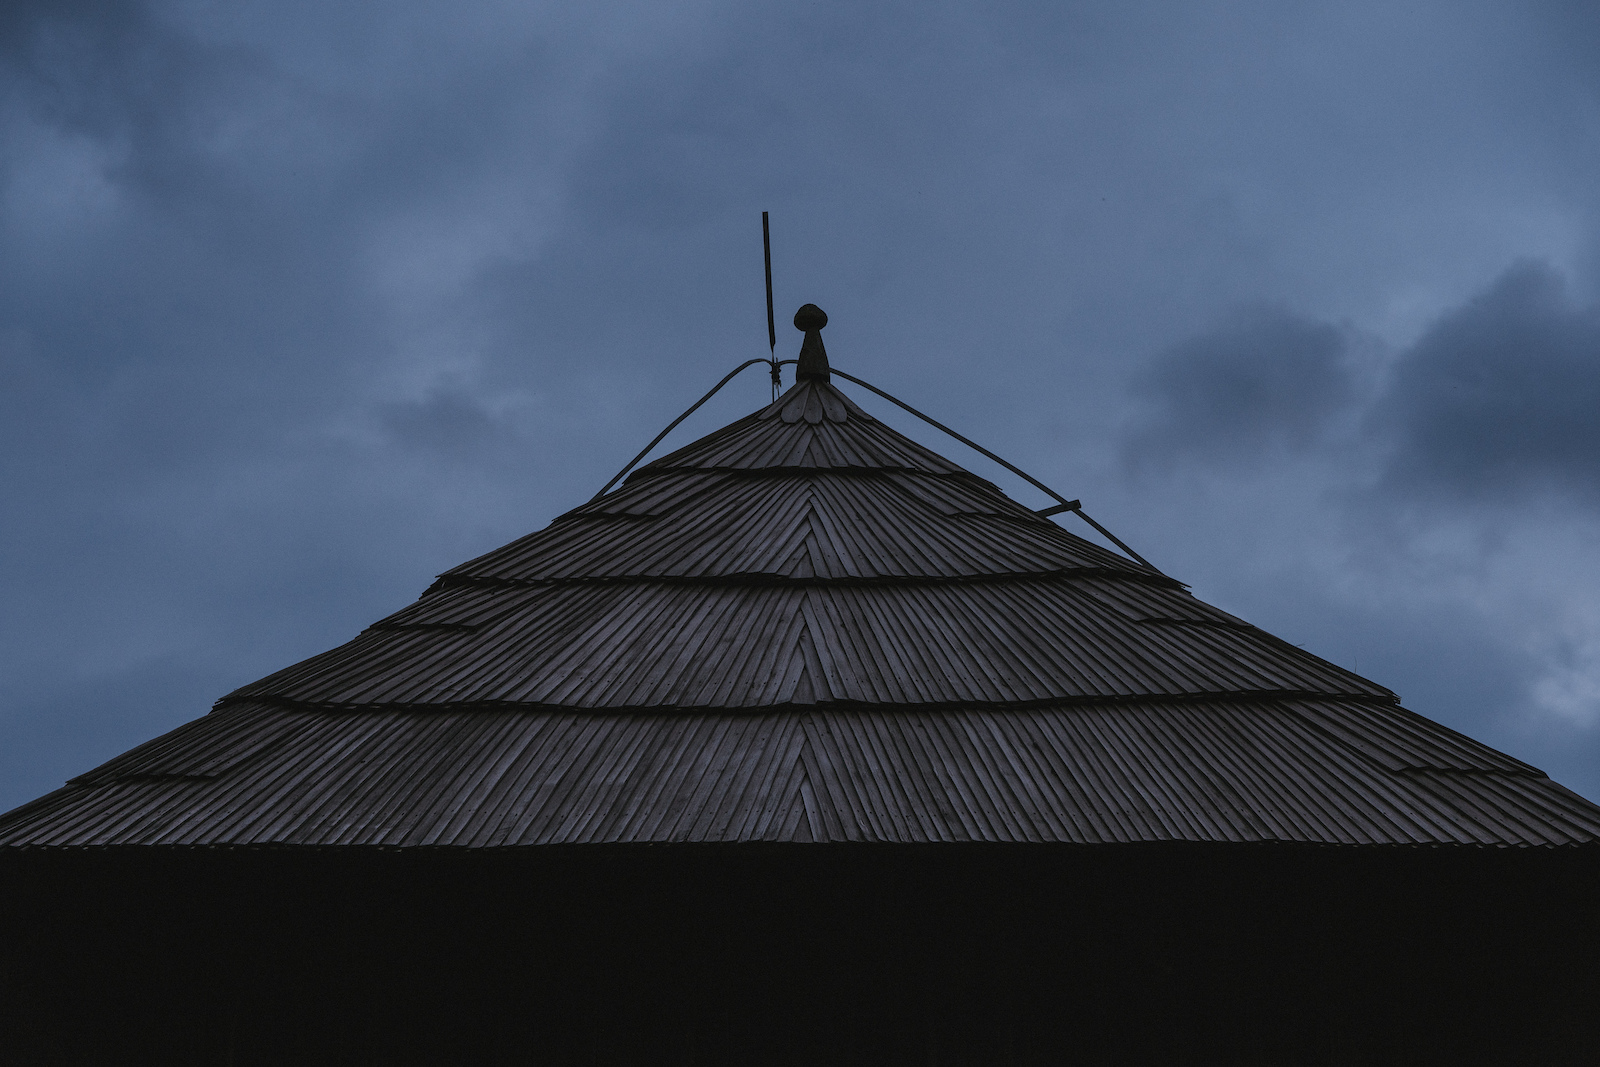 The roof tops are small works of art.